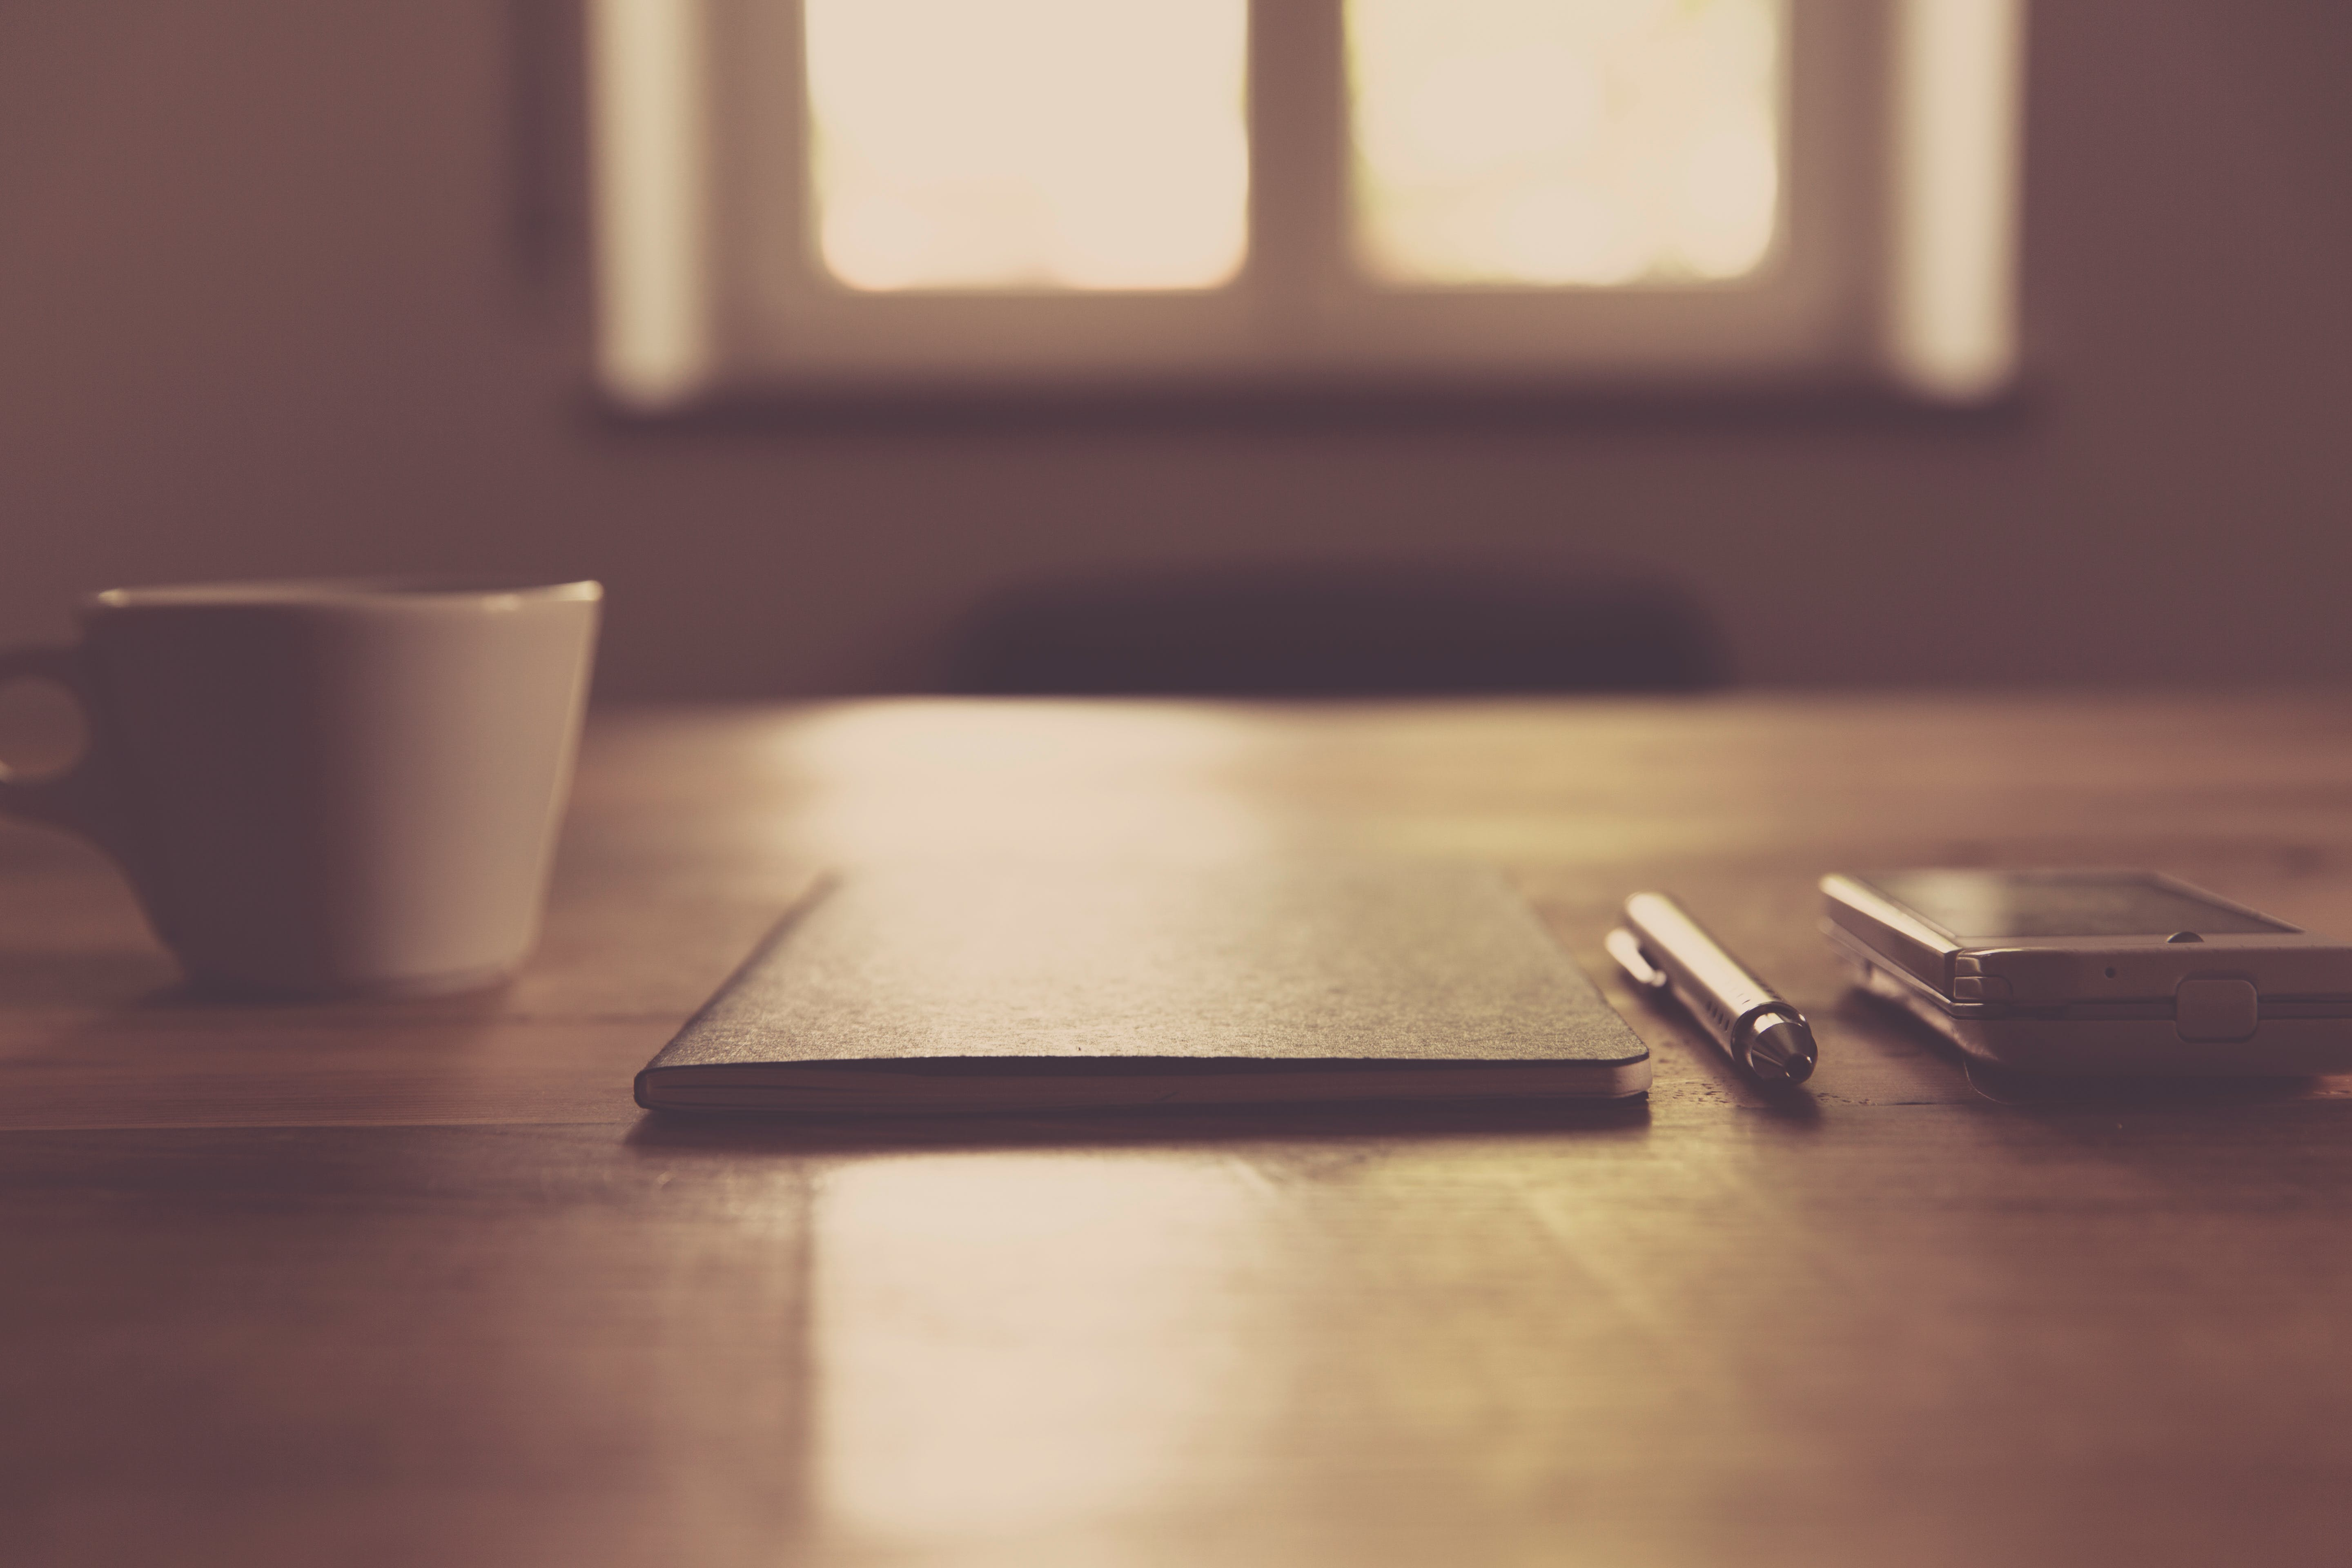 Black Closed Notebook Beside Click Pen and White Cup